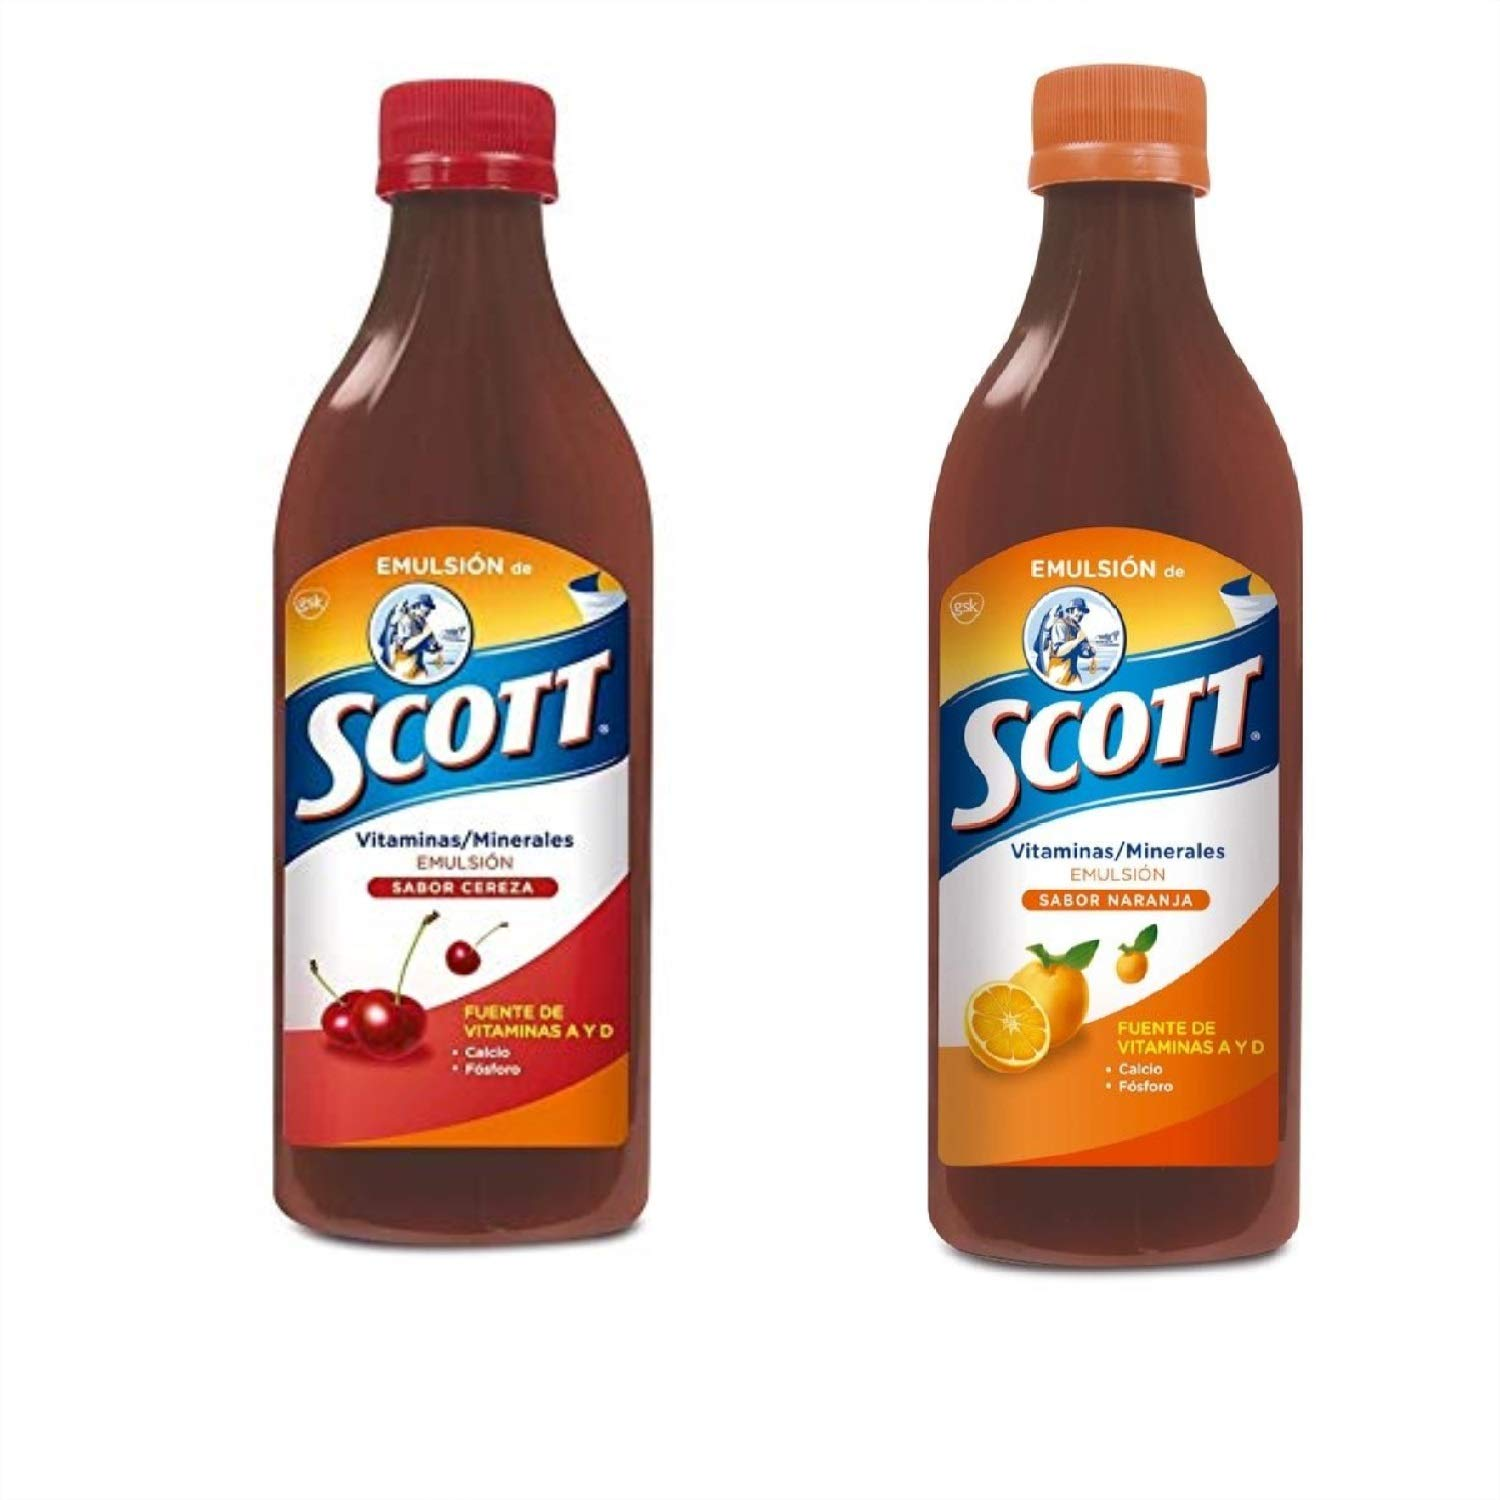 Scott Emulsion Cherry and Orange Flavor. Vitamin Supplement Rich in Cod Liver Oil, Vitamins